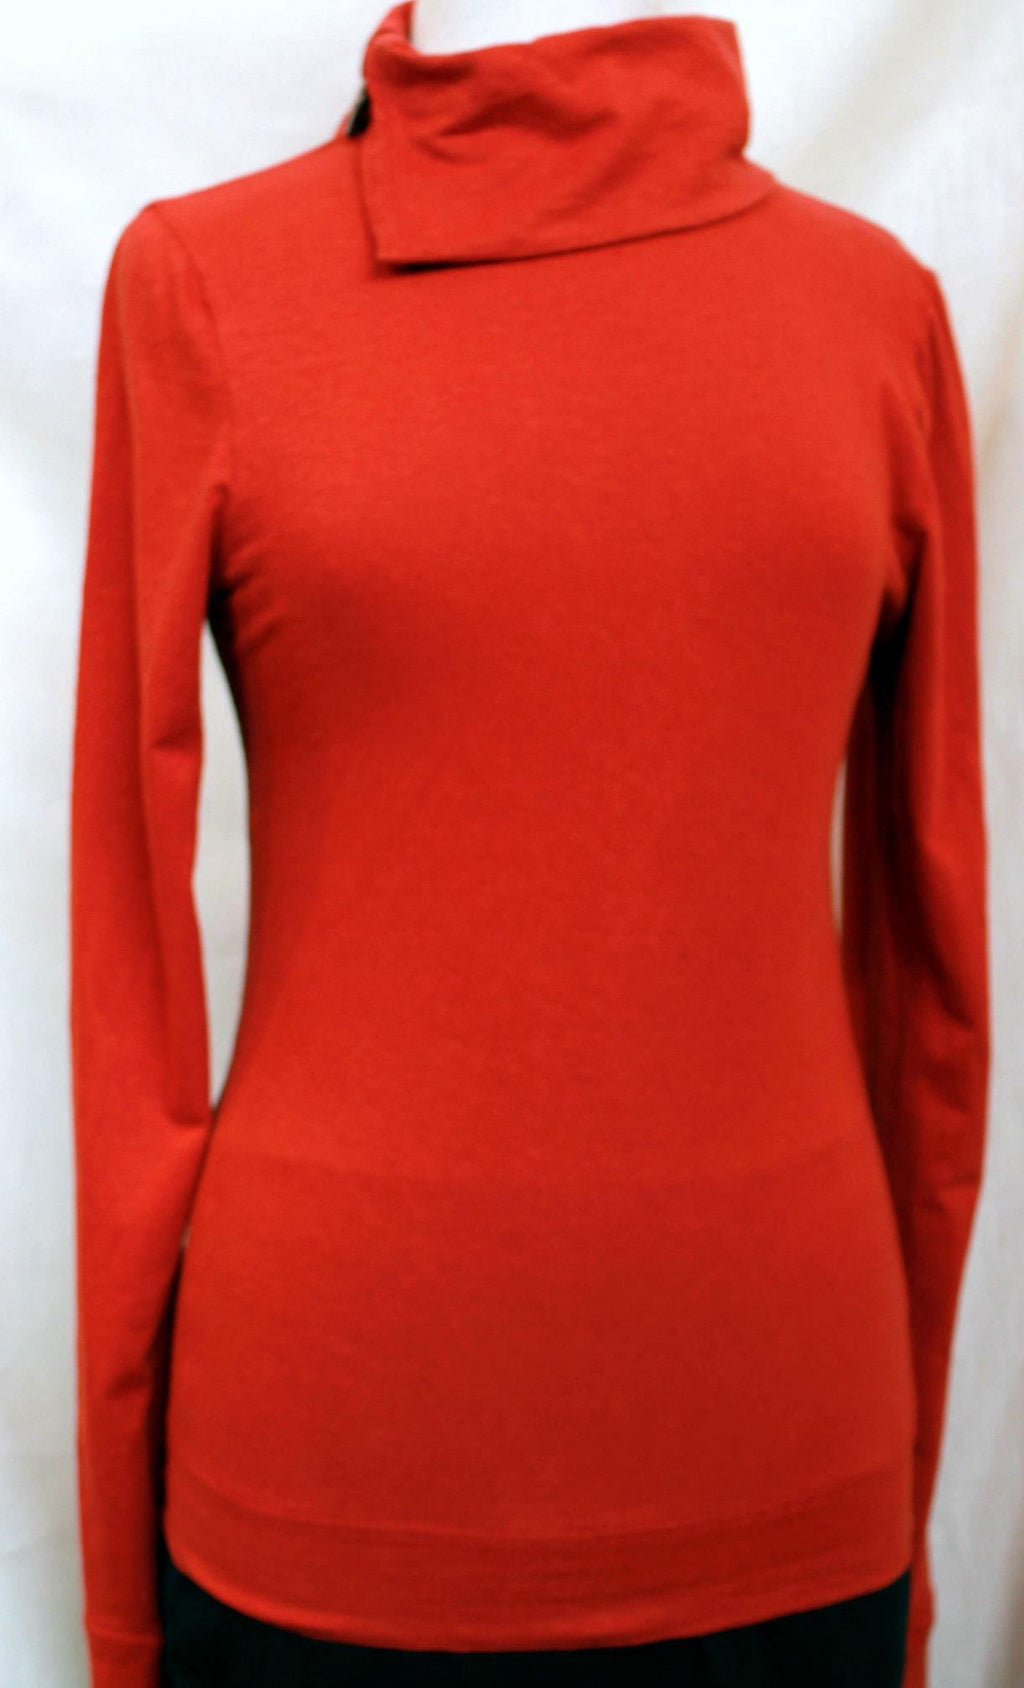 hemp long sleeve top with one button holding together the turtle neck neckline in a tangerine red/orange colour